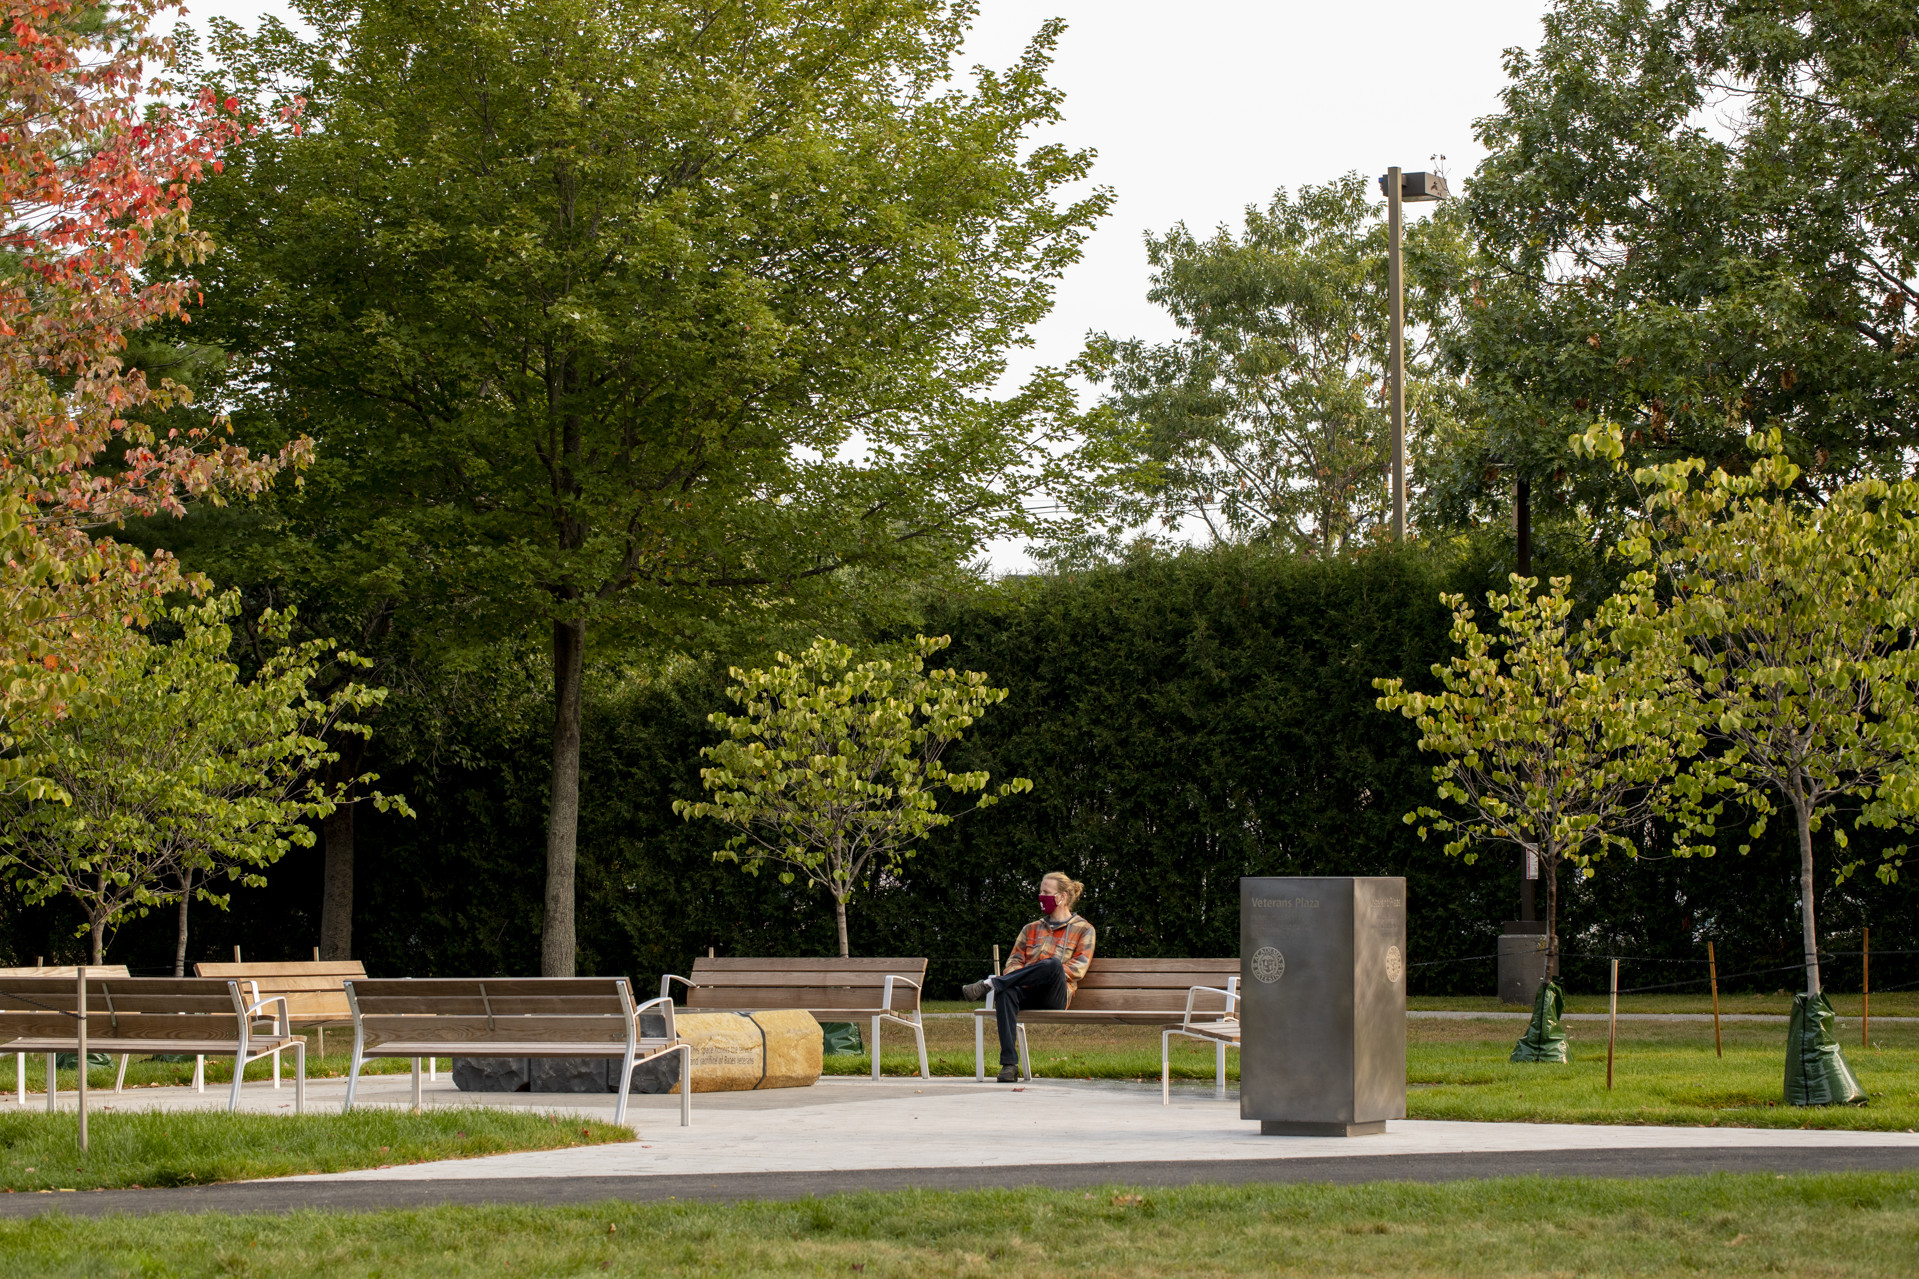 Enjoying Veterans Plaza in the early morning. The marker designating the site is in the foreground and the low stone piece between two benches is a basalt sculpture designed to promote focus and contemplation. (Phyllis Graber Jensen/Bates College)